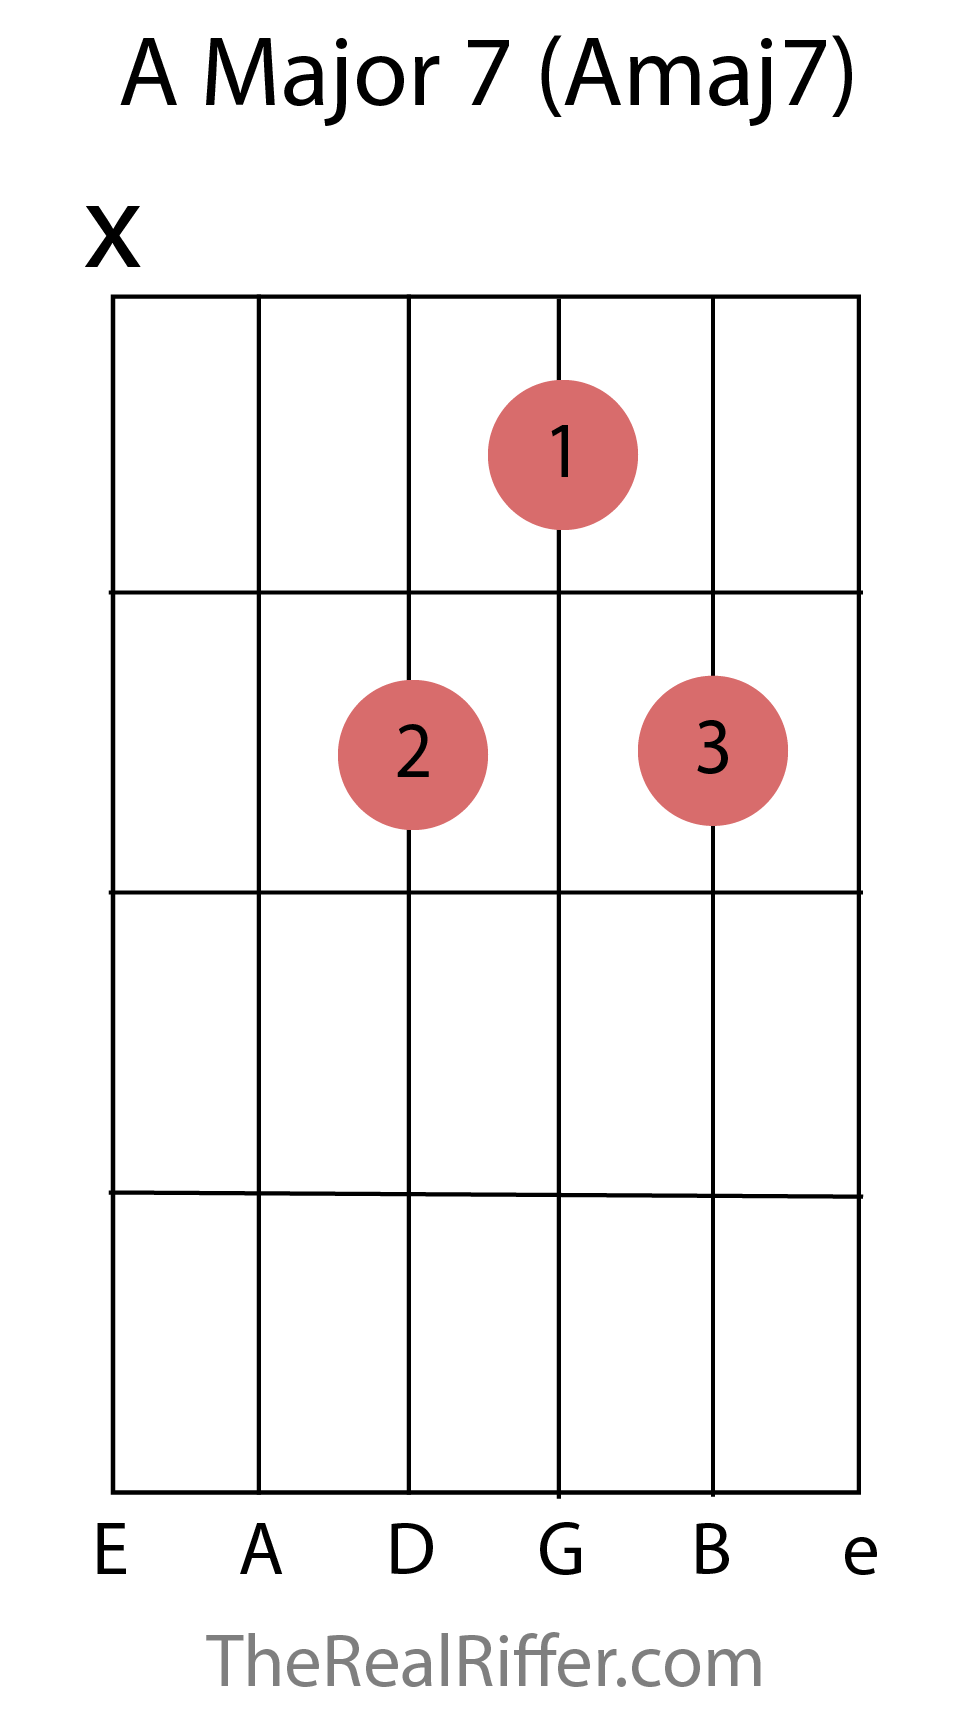 Chords reference therealriffer minor 7th chords hexwebz Images